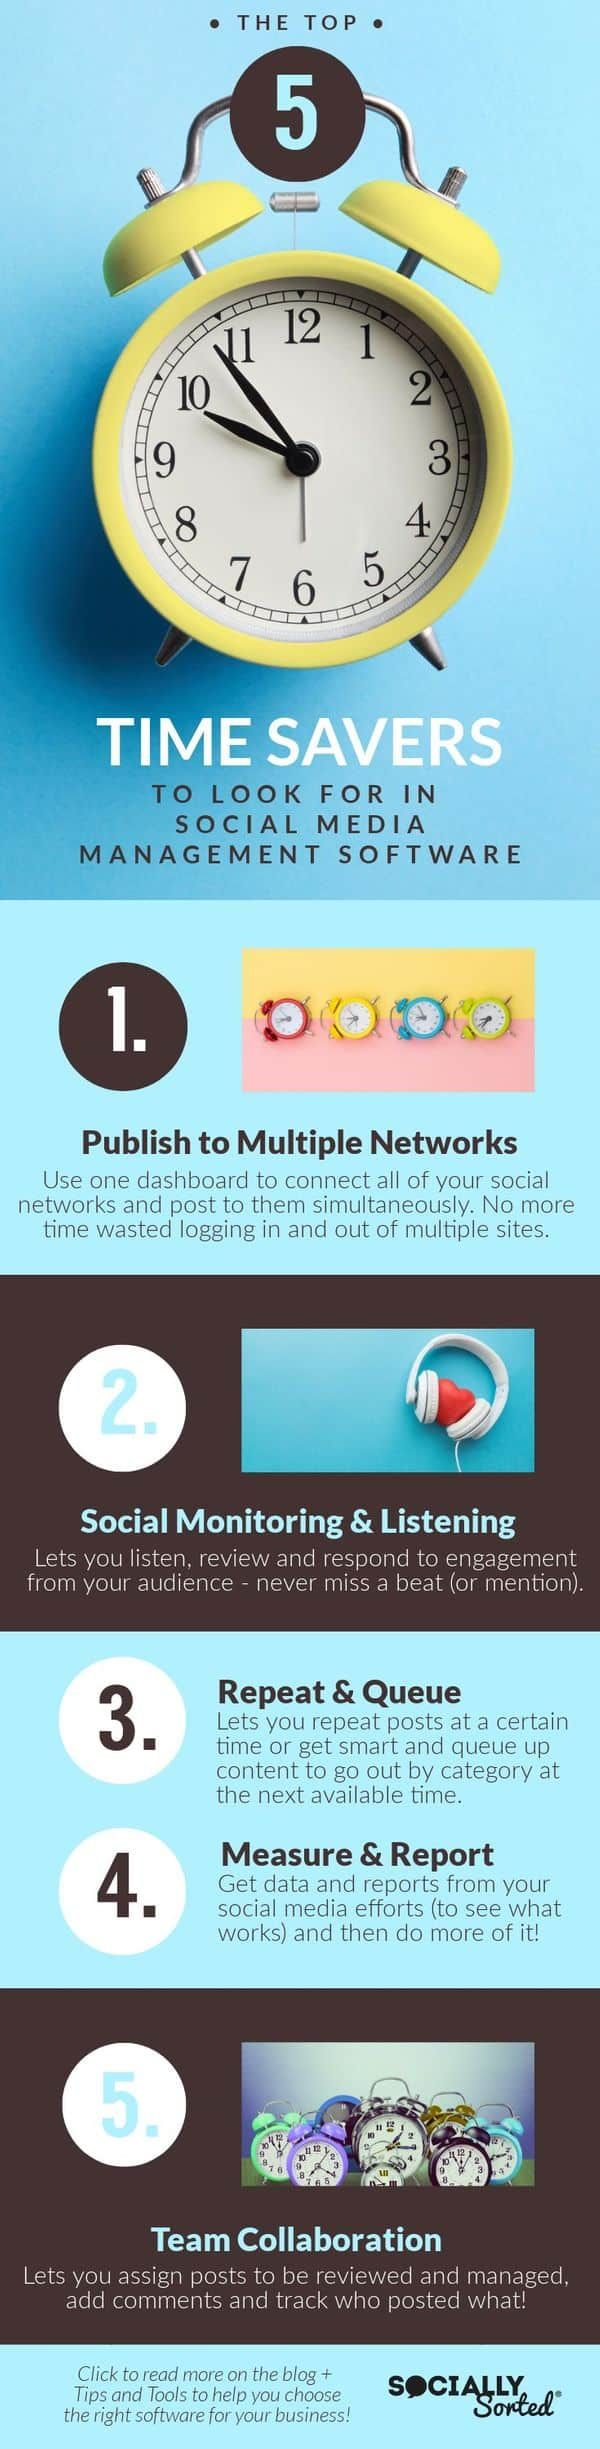 5 Features Of Social Media Management Software To Save You Time Social Media Management Software Social Media Infographic Social Media Management Tools